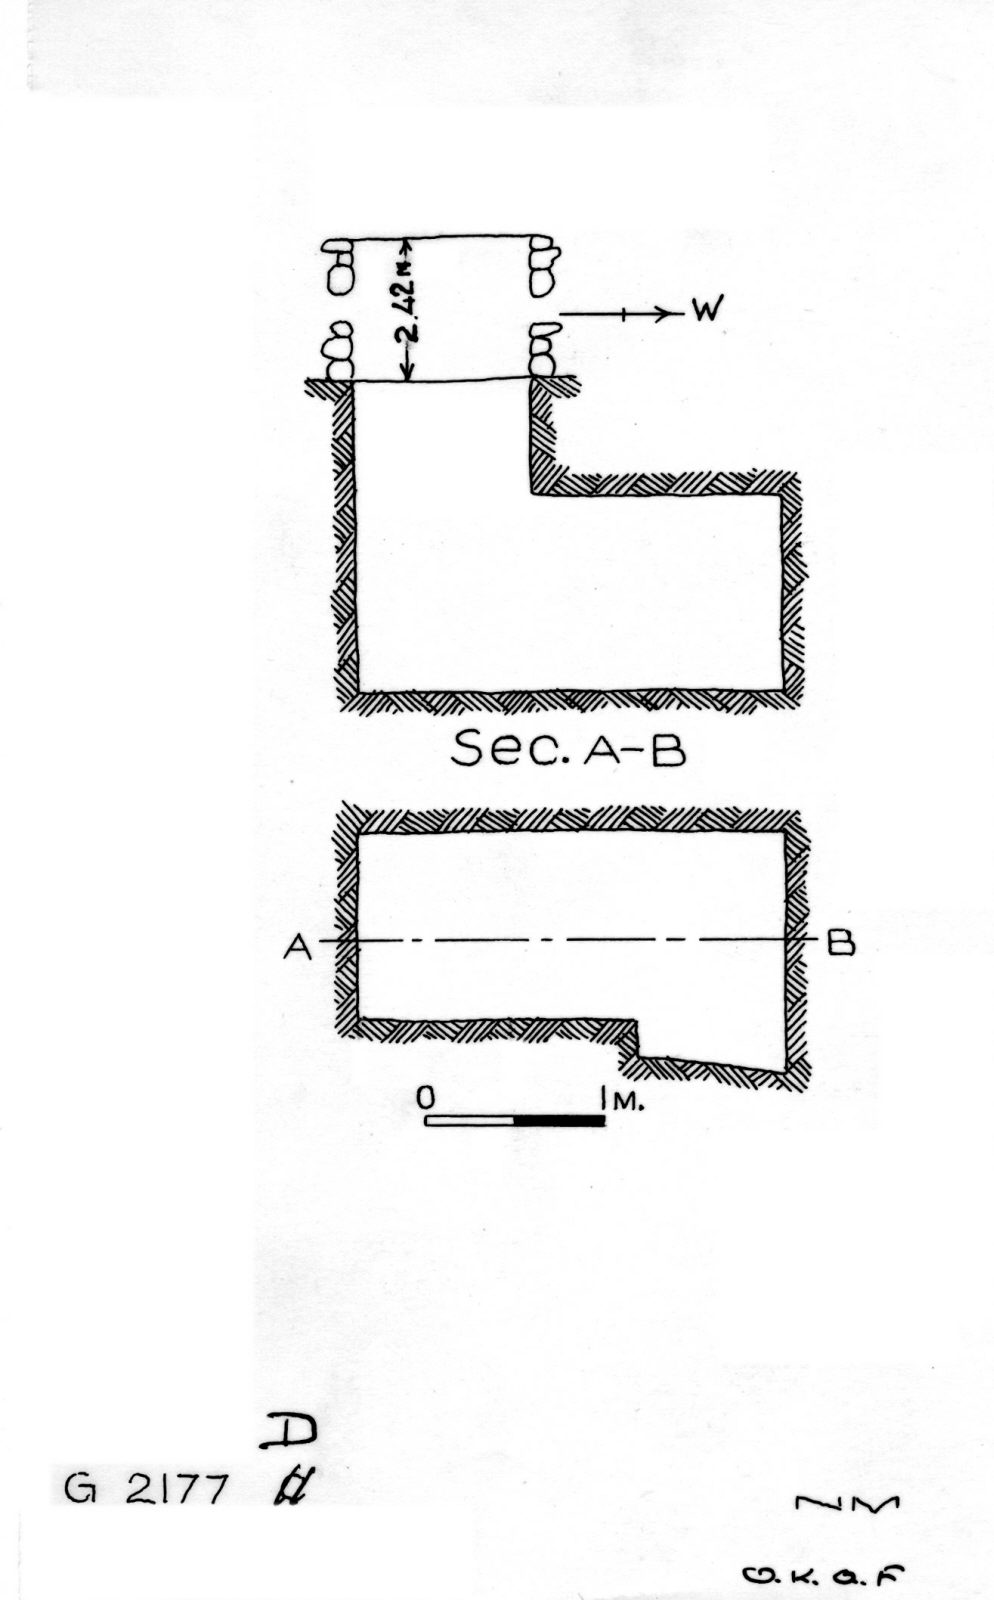 Maps and plans: G 2177, Shaft D